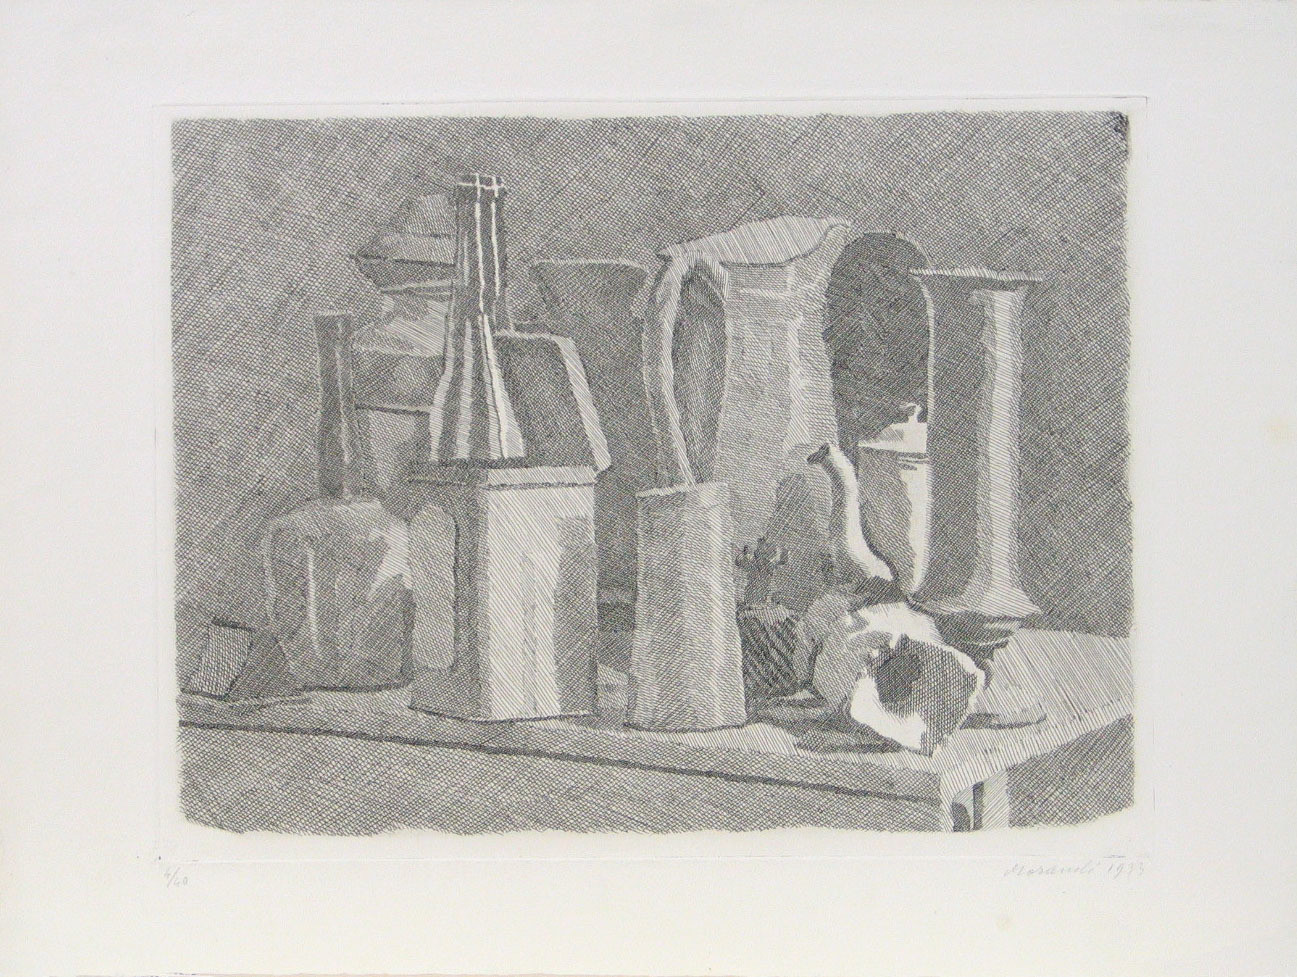 Giorgio Morandi. Grande natura morta con la caffettiera (Large Still Life with Coffeepot). 1933, half the edition printed 1943, the other half printed 1949